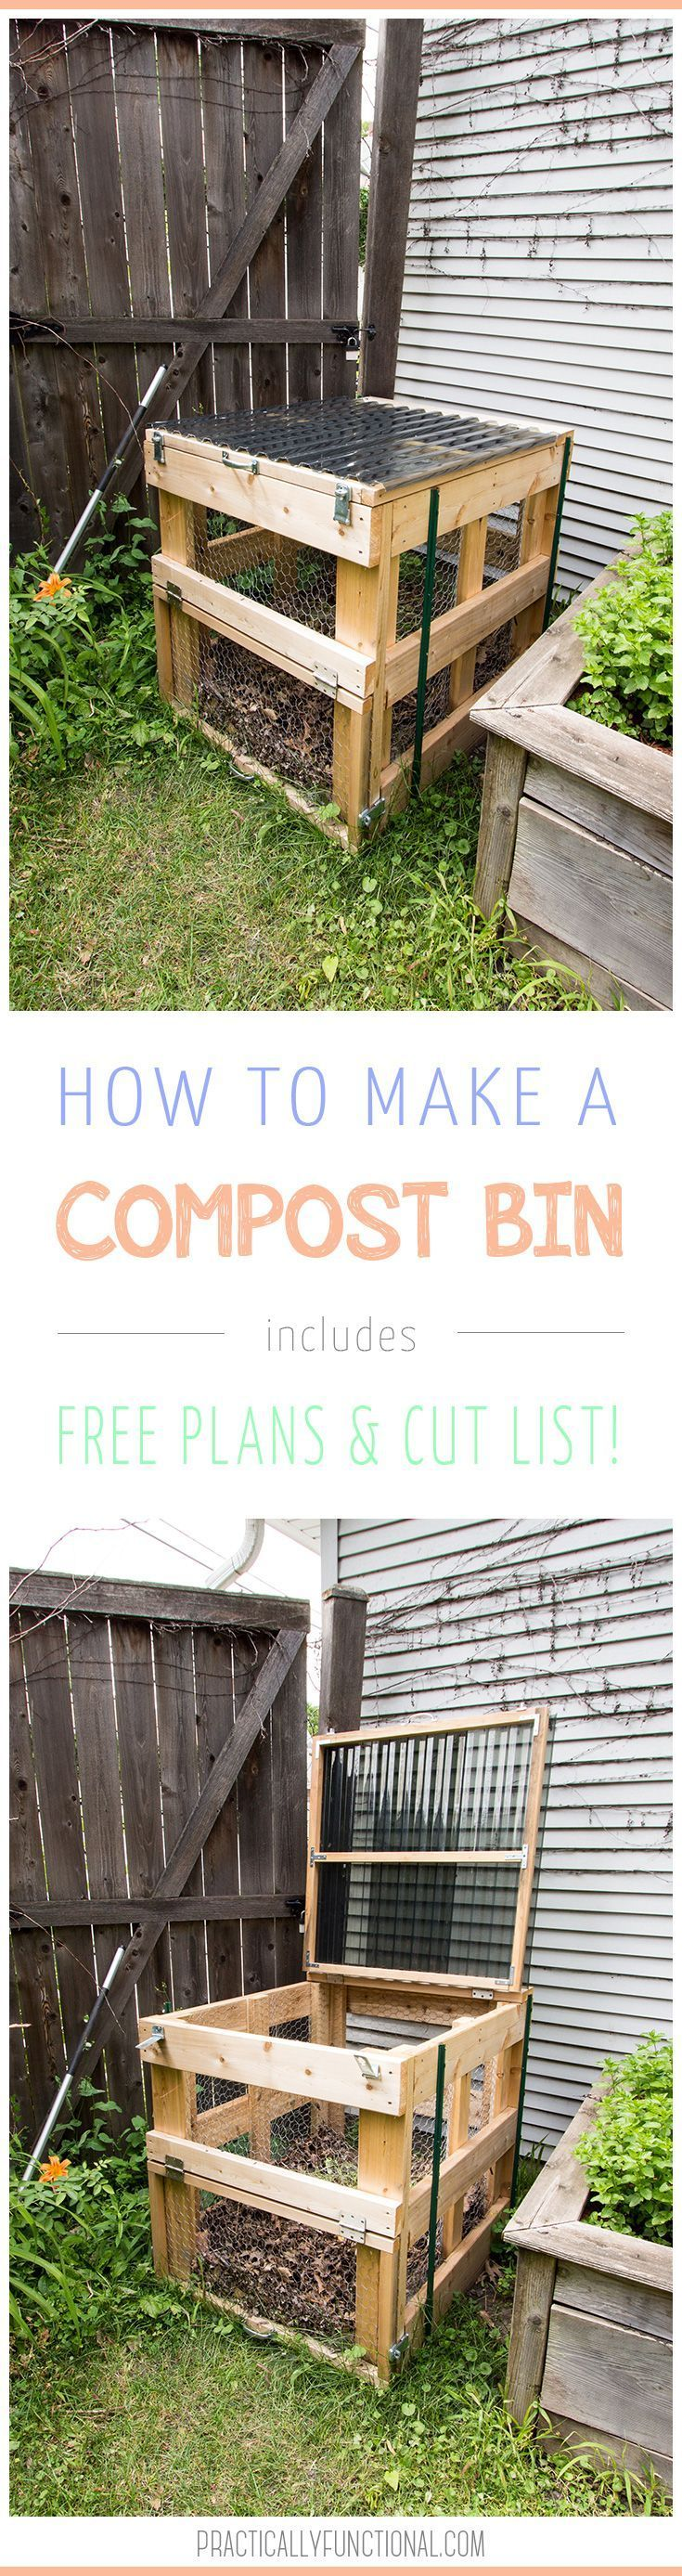 67 best composting images on pinterest | compost, composters and